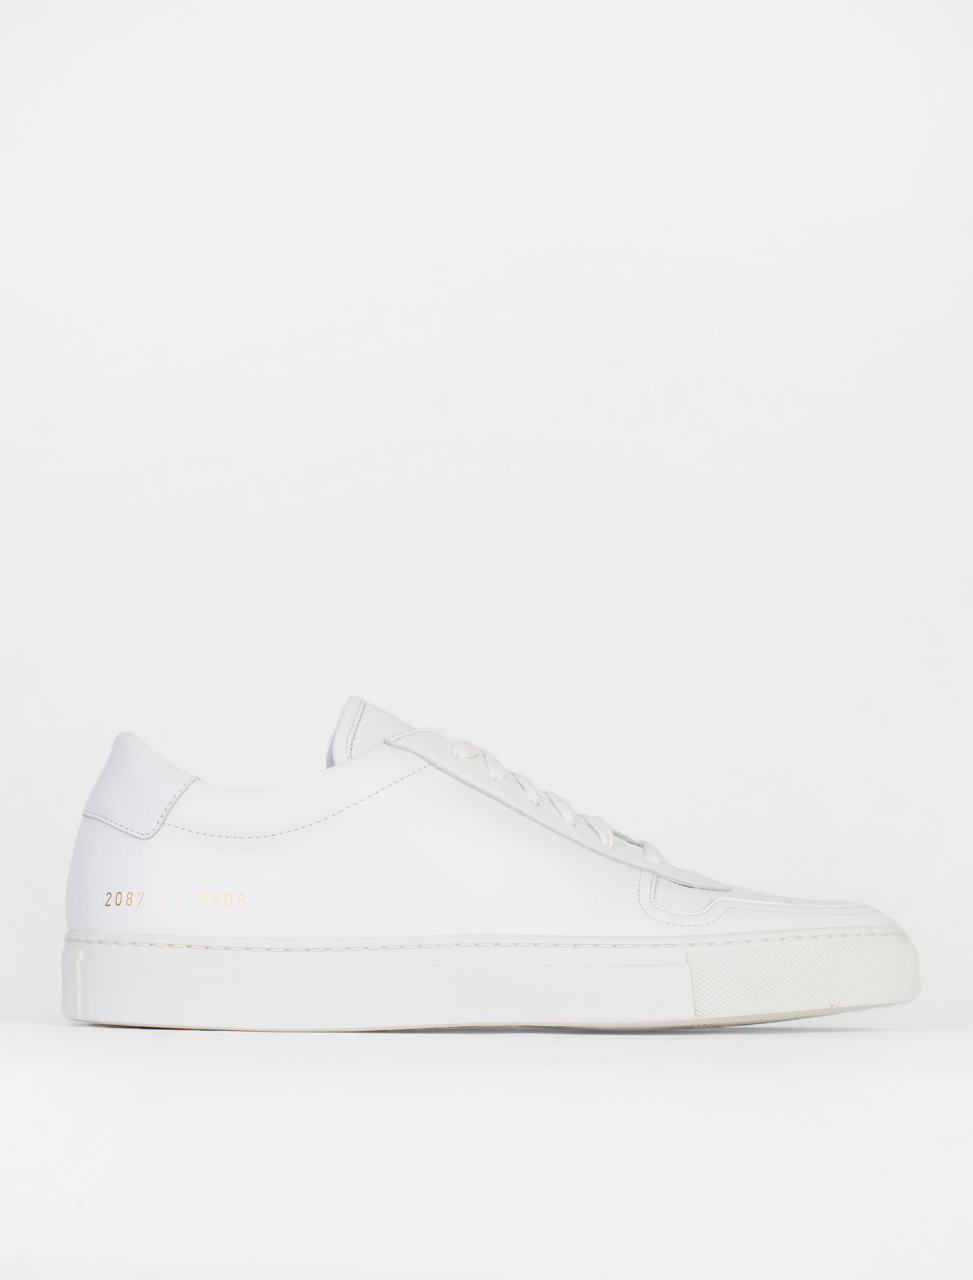 Bball Low in Leather 2087